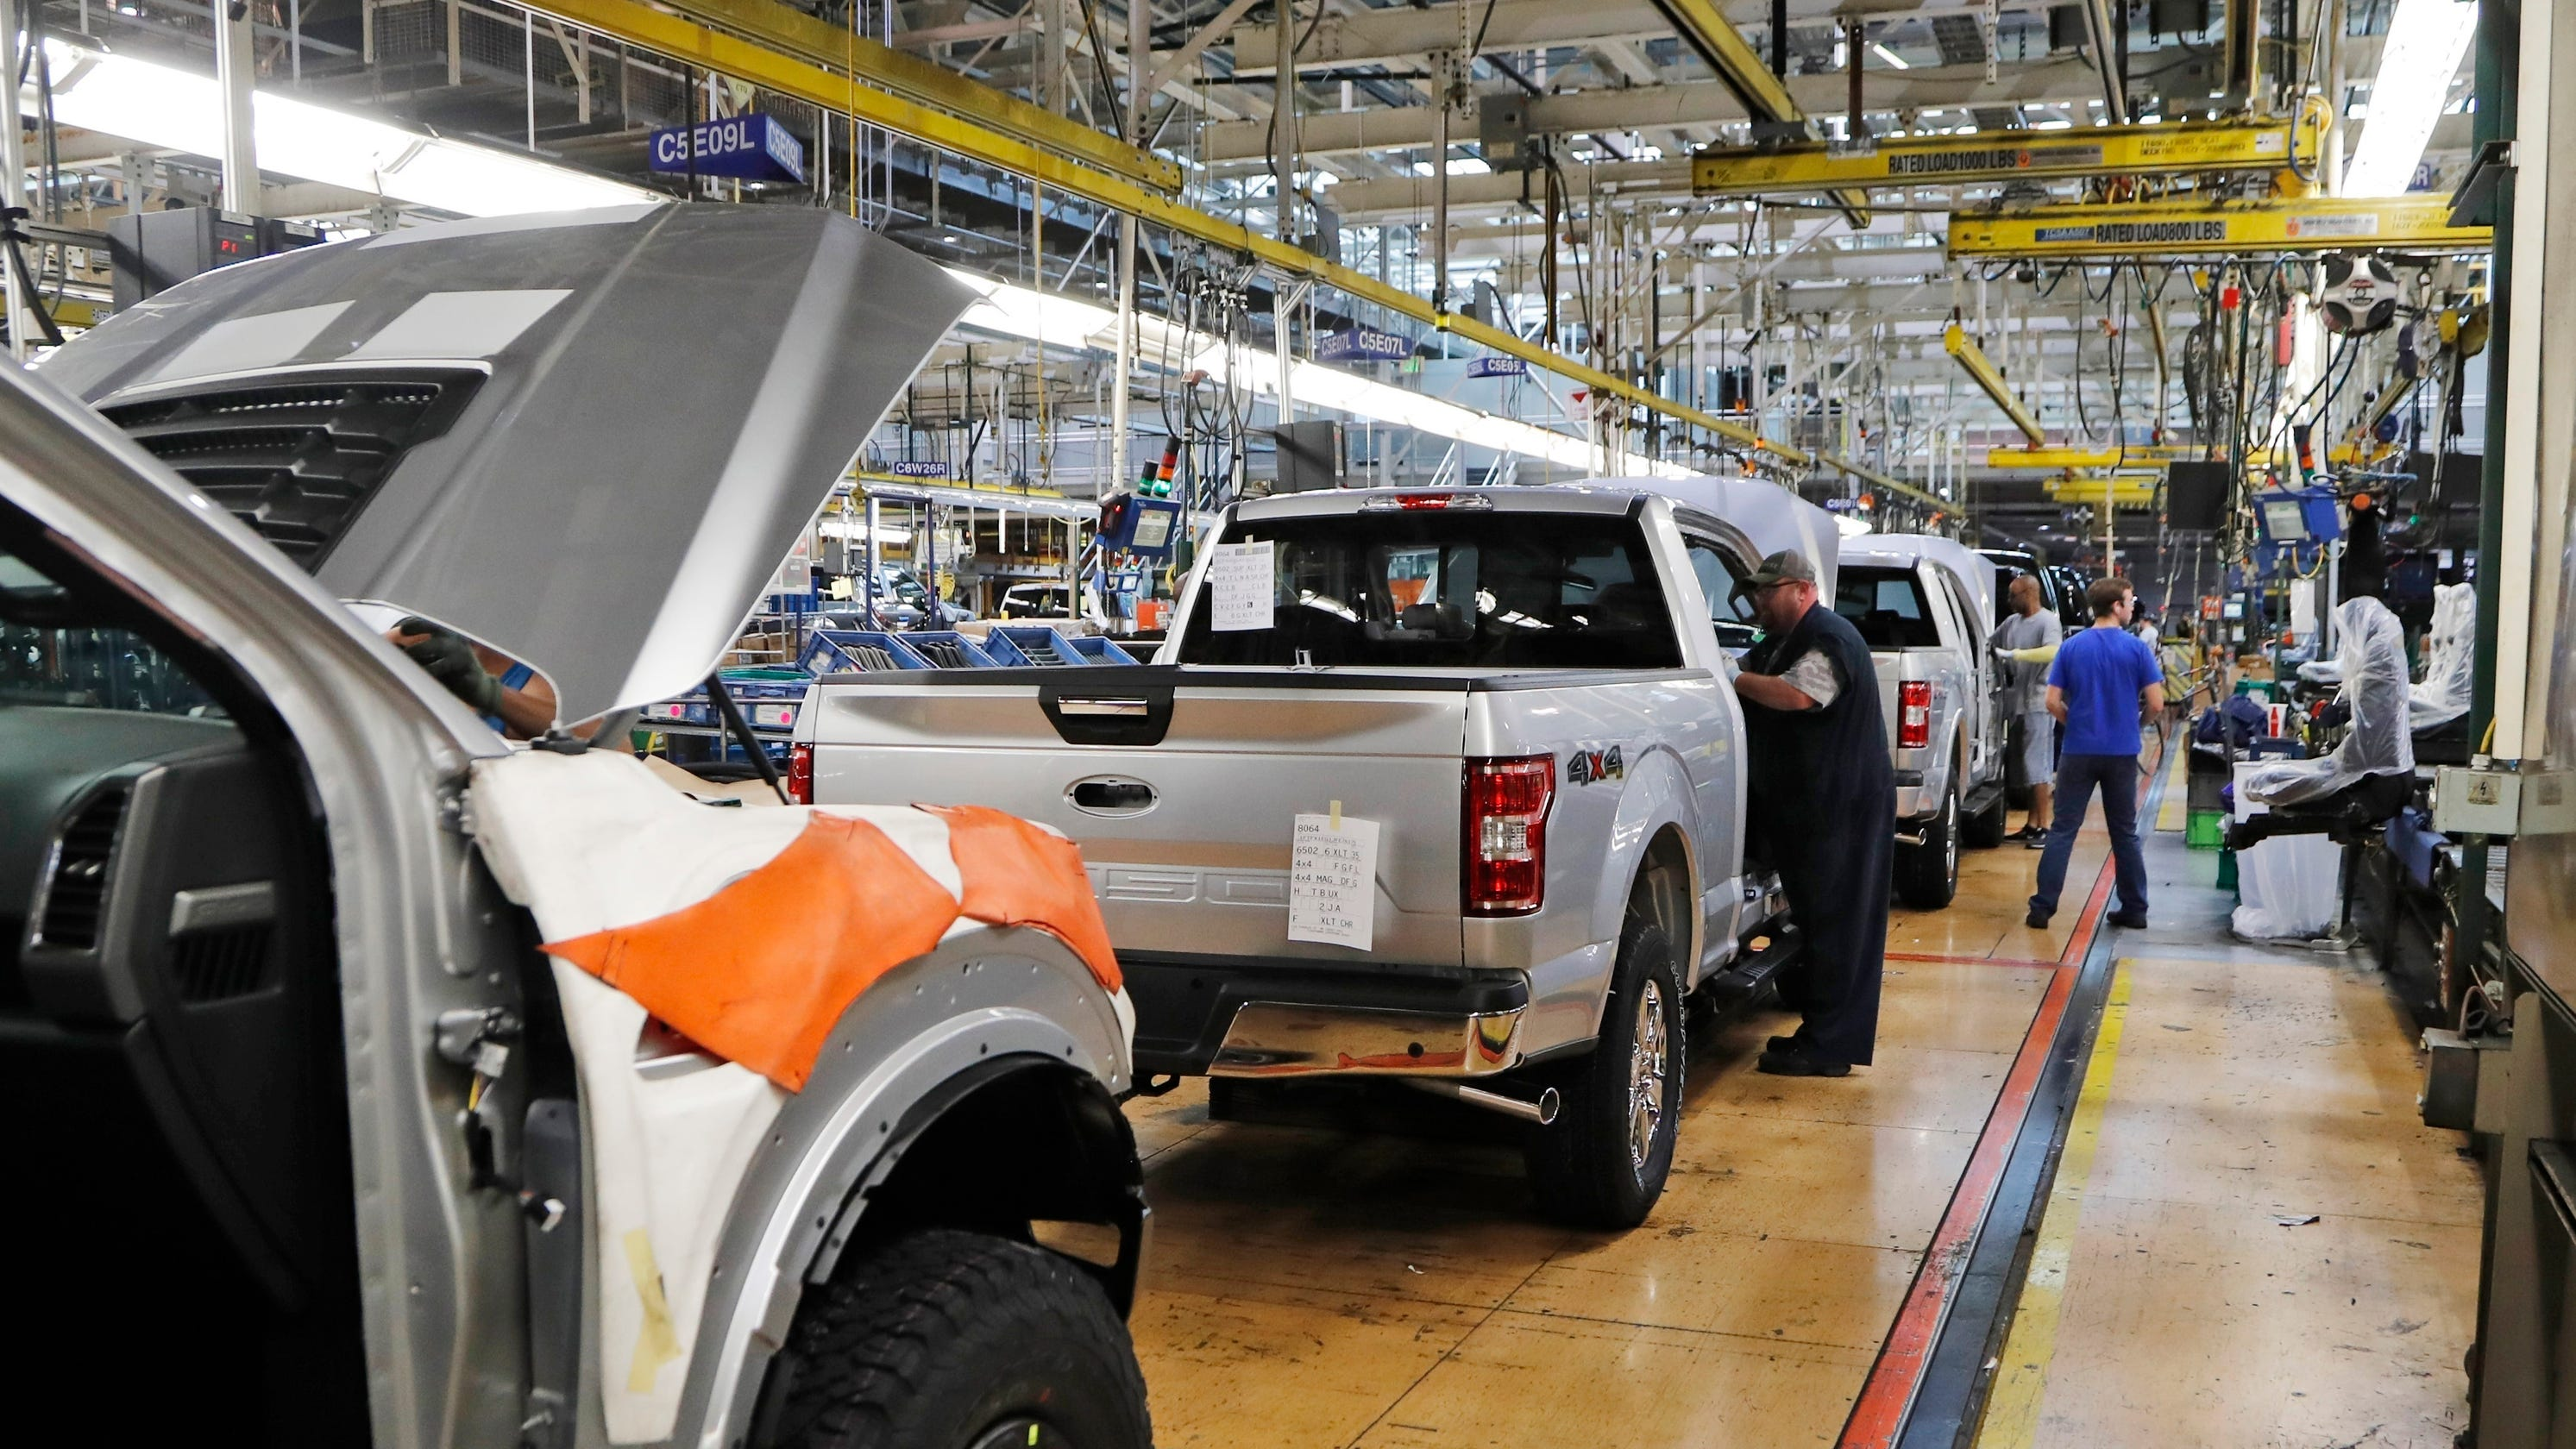 Ford's first quarterly report for 2020 the worst since Great Recession